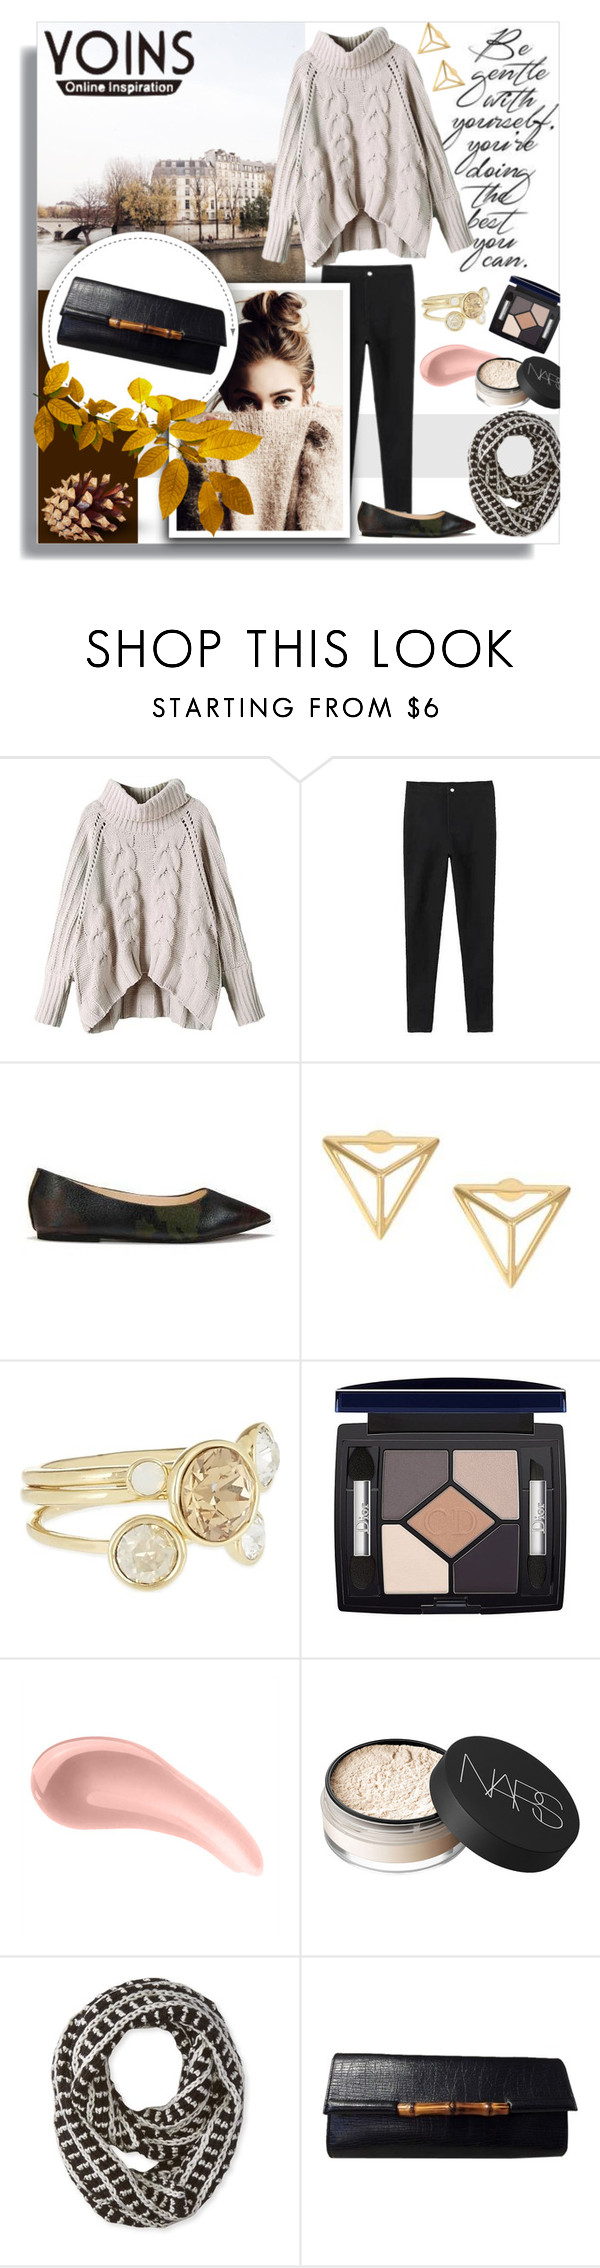 """""""Shop - Yoins"""" by melissa-de-souza ❤ liked on Polyvore featuring Ted Baker, Christian Dior, CARGO, NARS Cosmetics, Big Buddha, Gucci and yoins"""